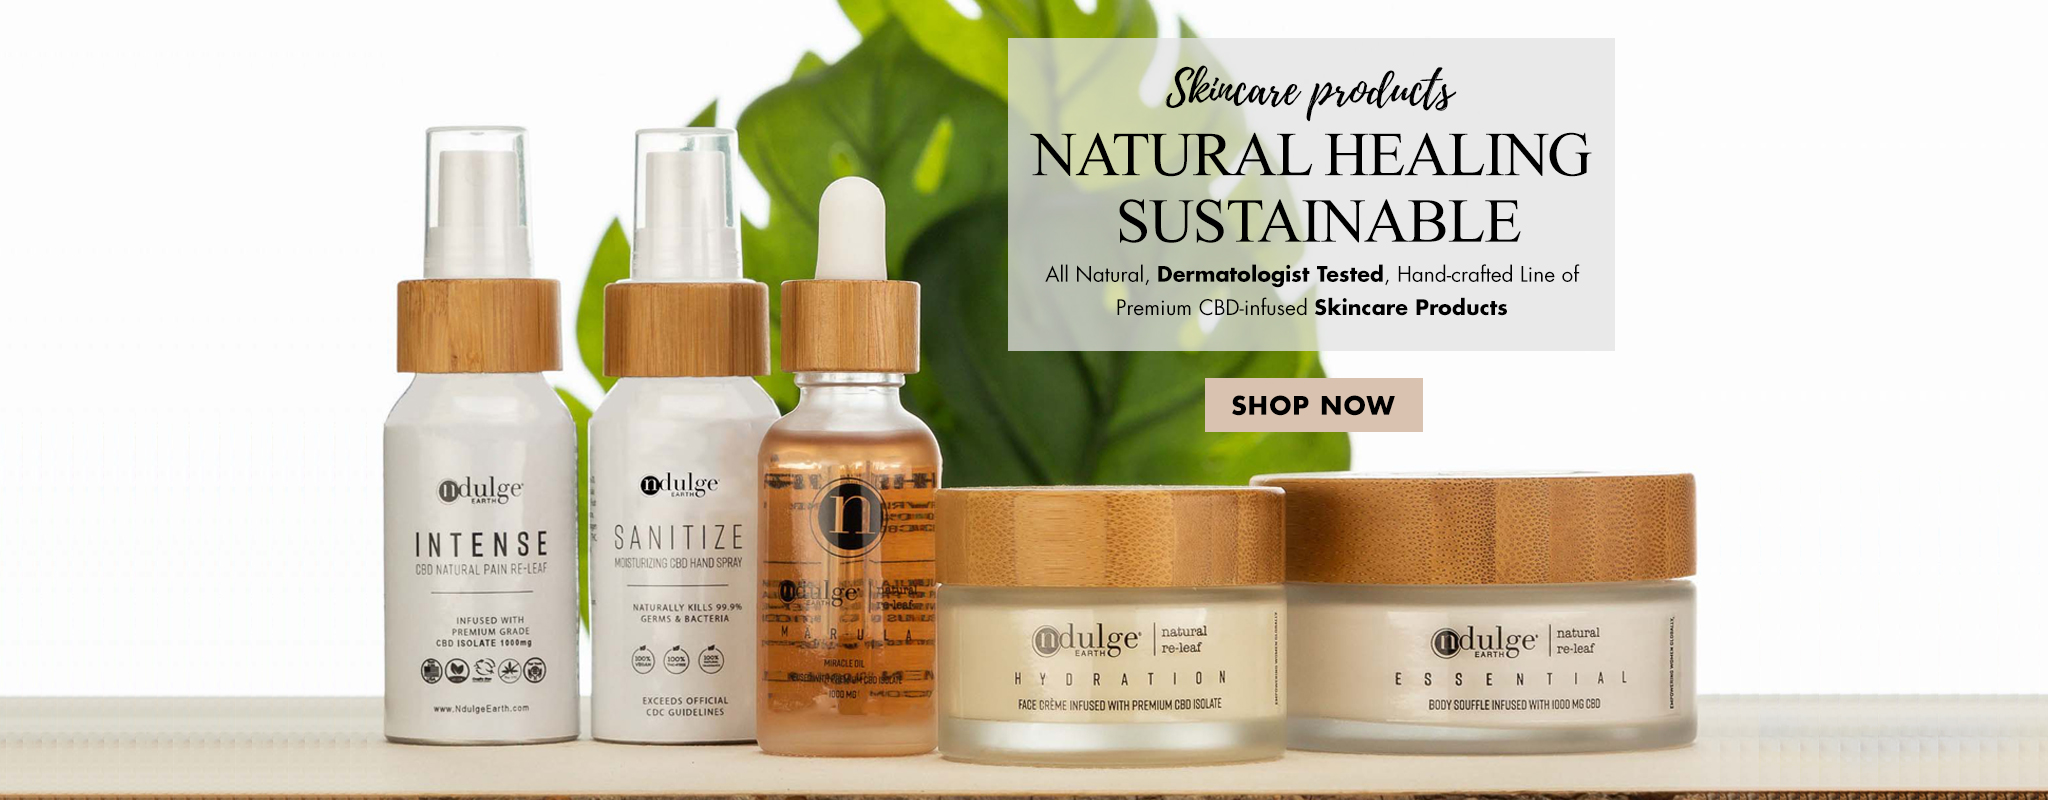 Natural healing sustainable